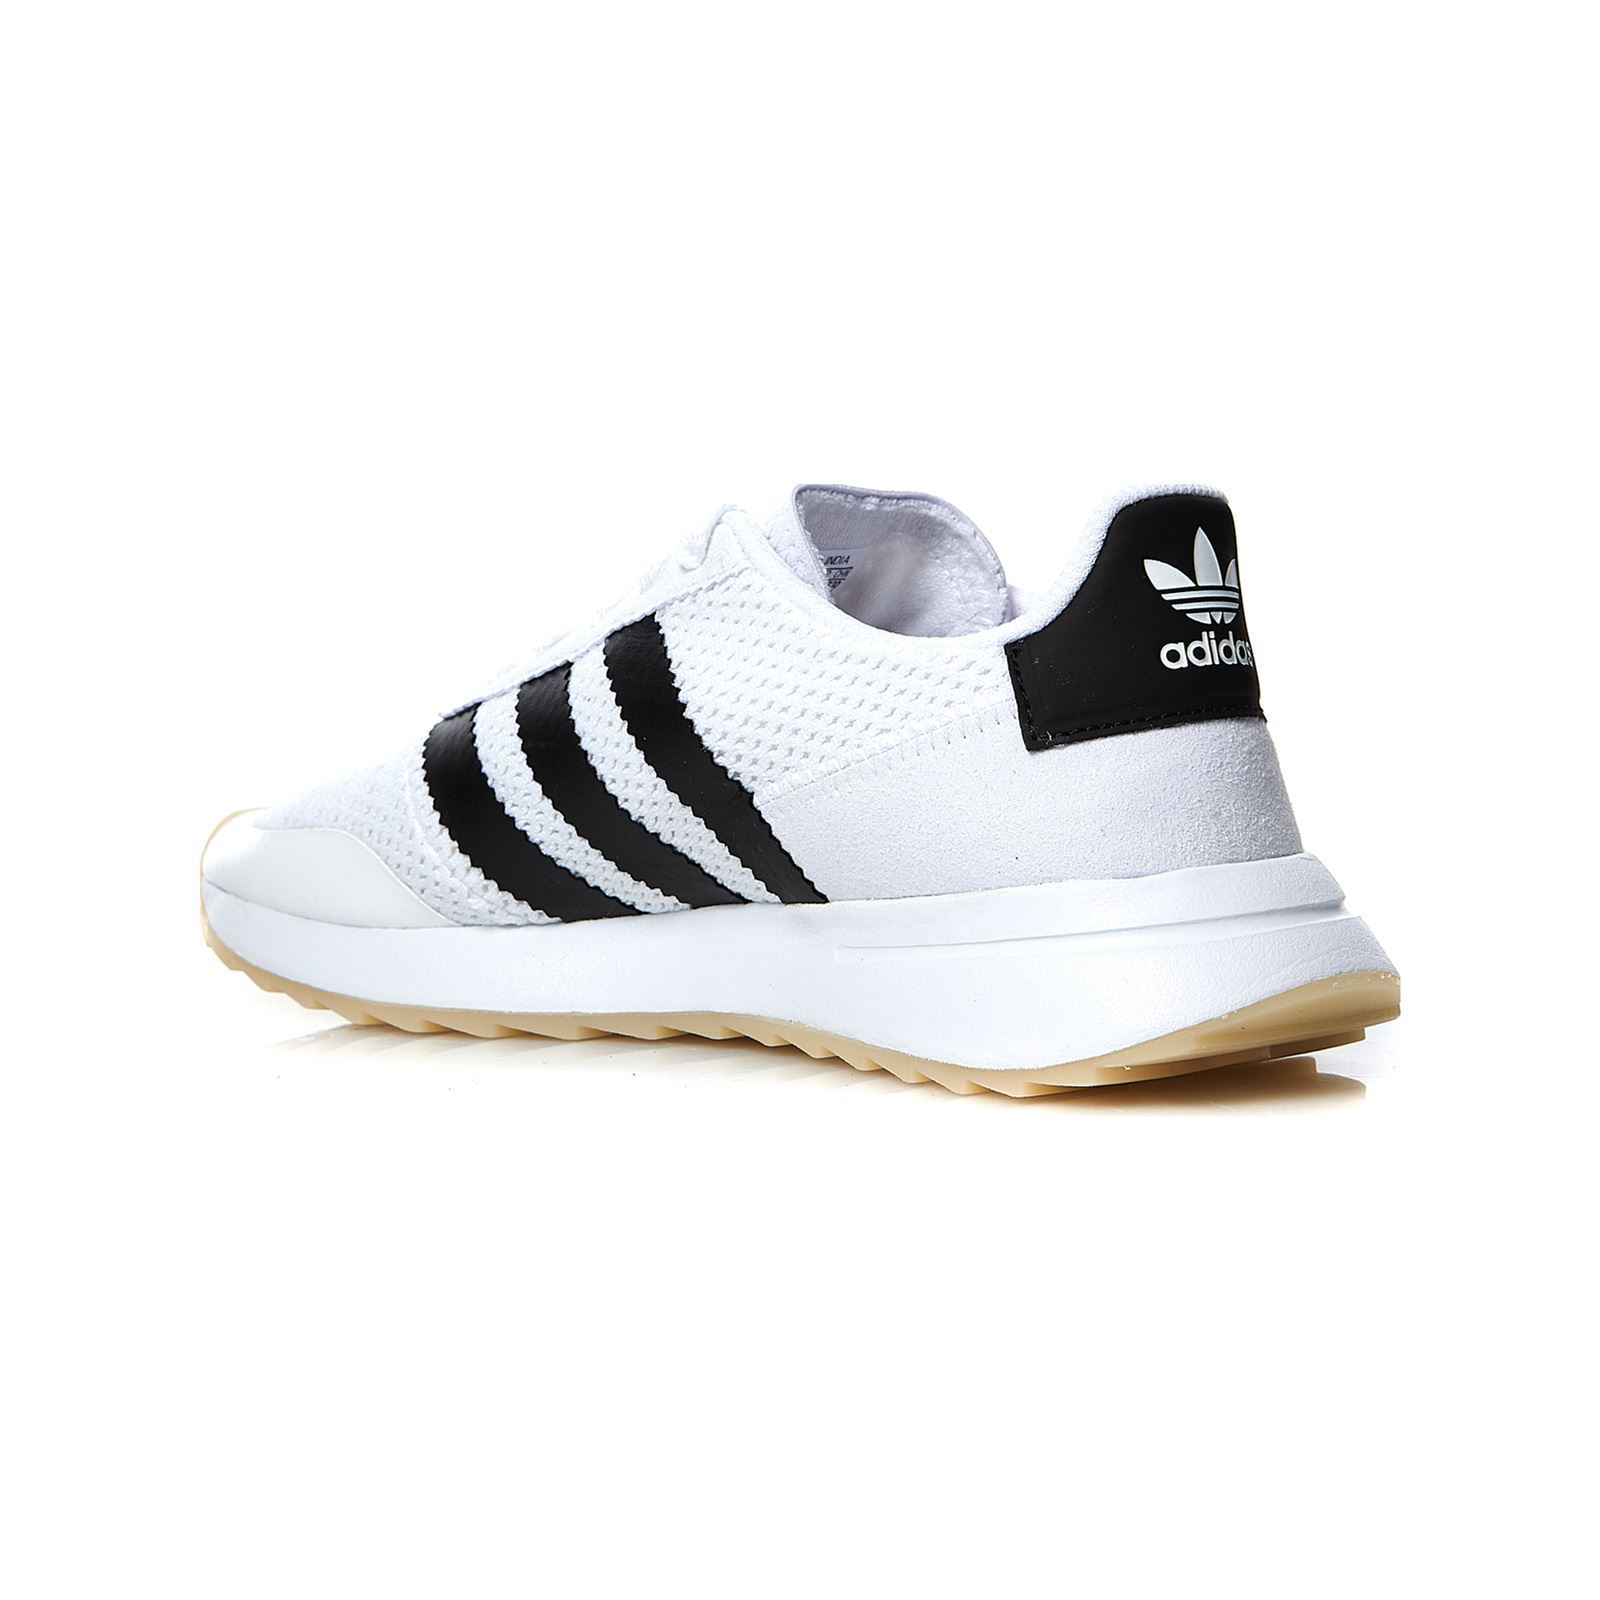 Flb W BlancBrandalley Baskets Originals Adidas WDIbe9YEH2